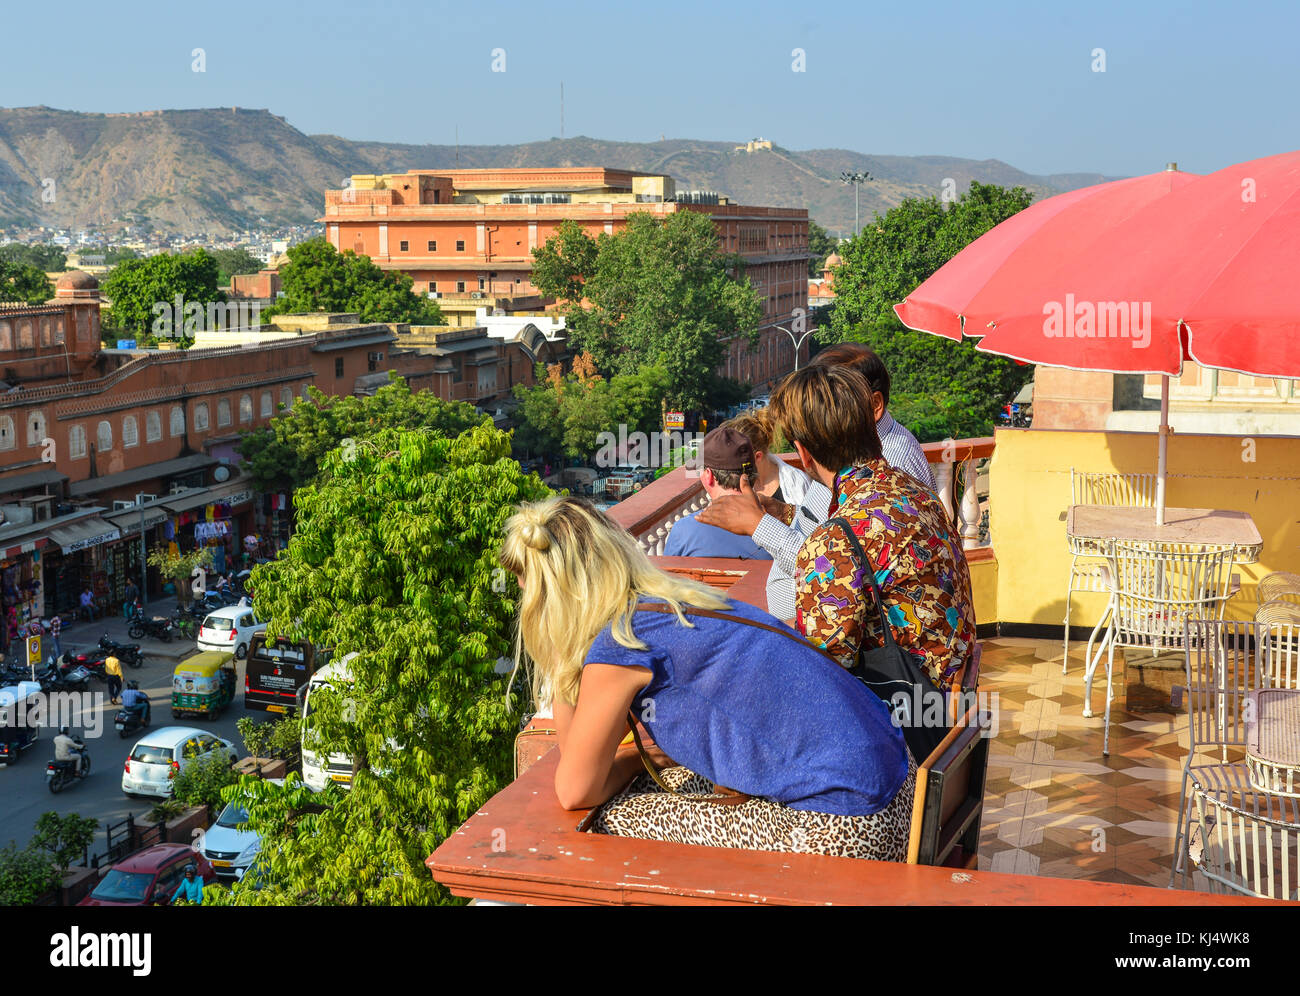 Sky Beach Cafe In Jaipur